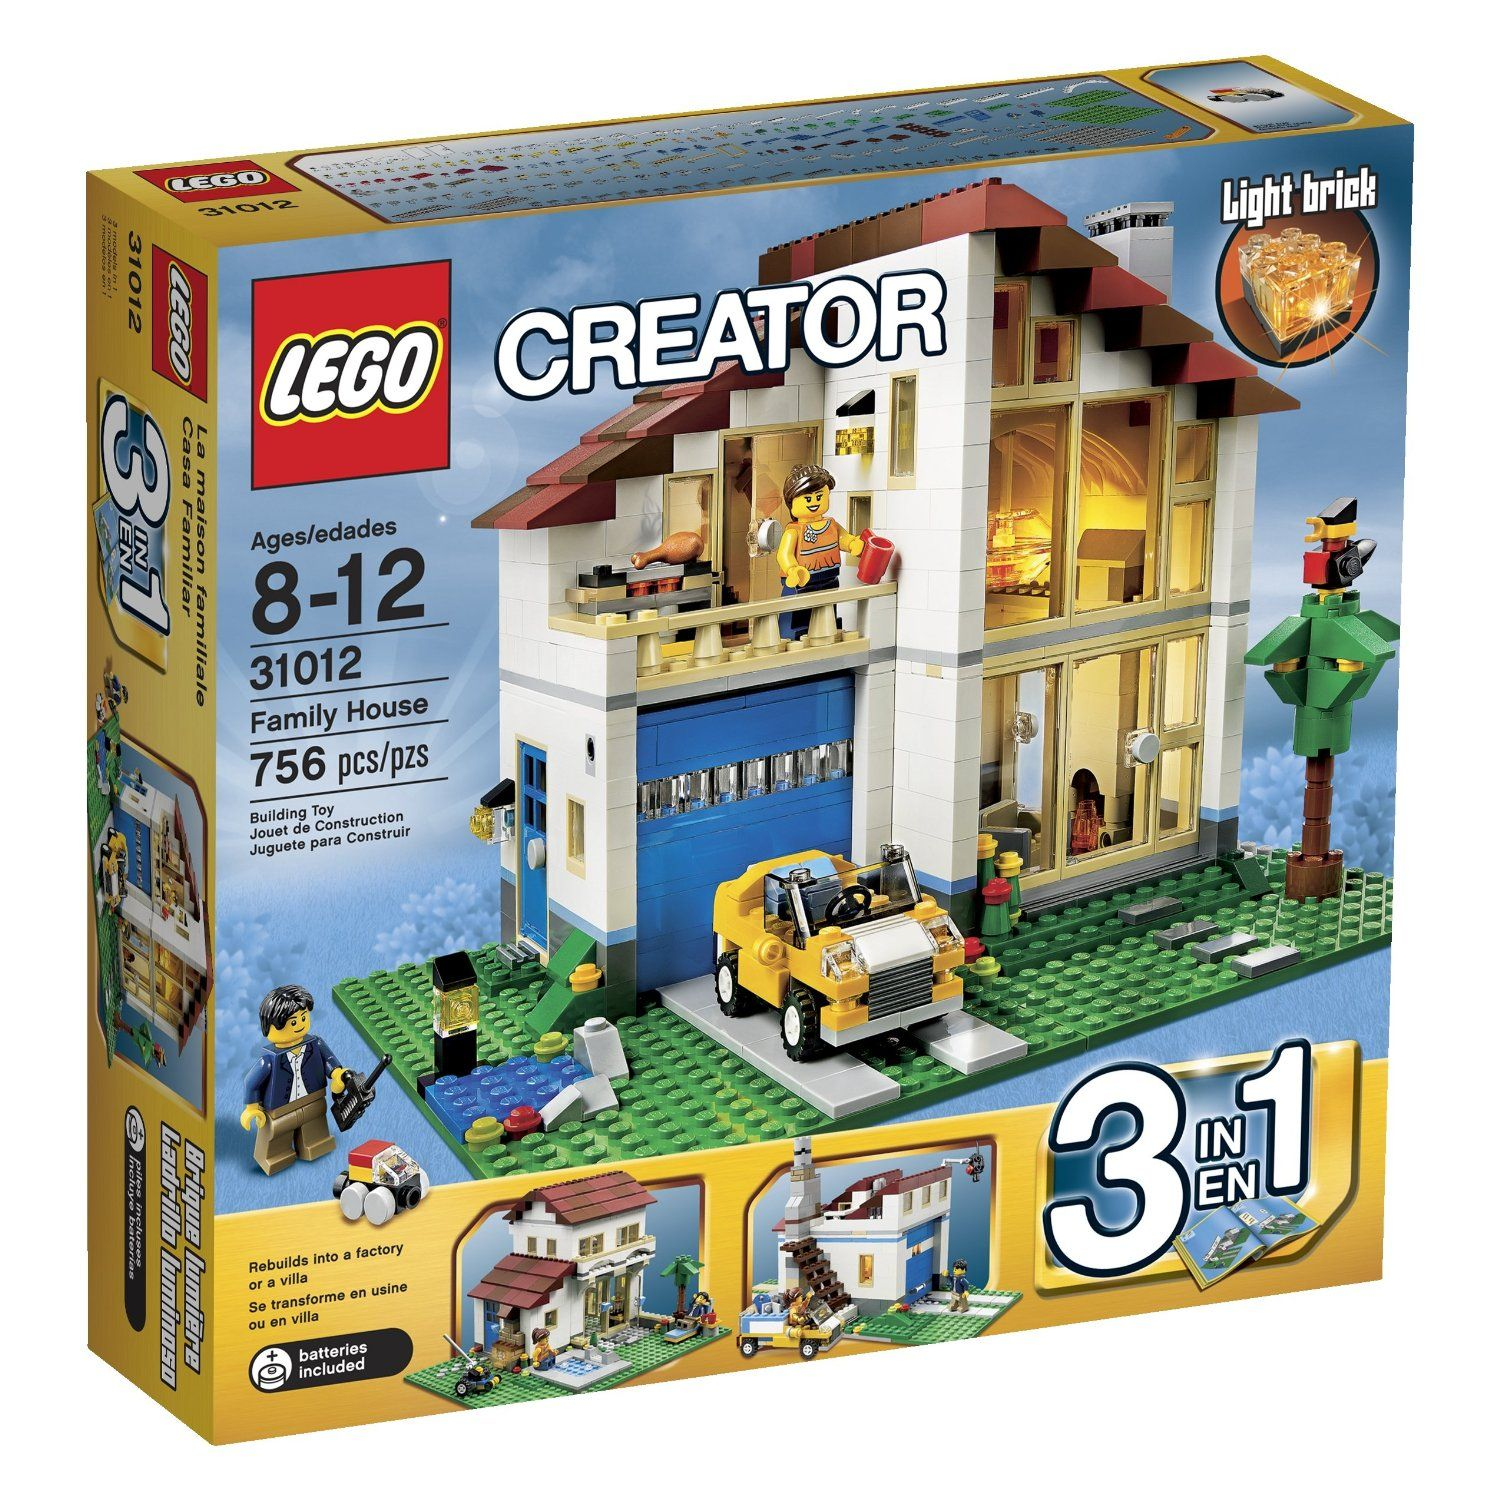 Lego Creator 3 In 1 Home Playsets Are Awesome Lego Creator Sets Lego Creator Lego House